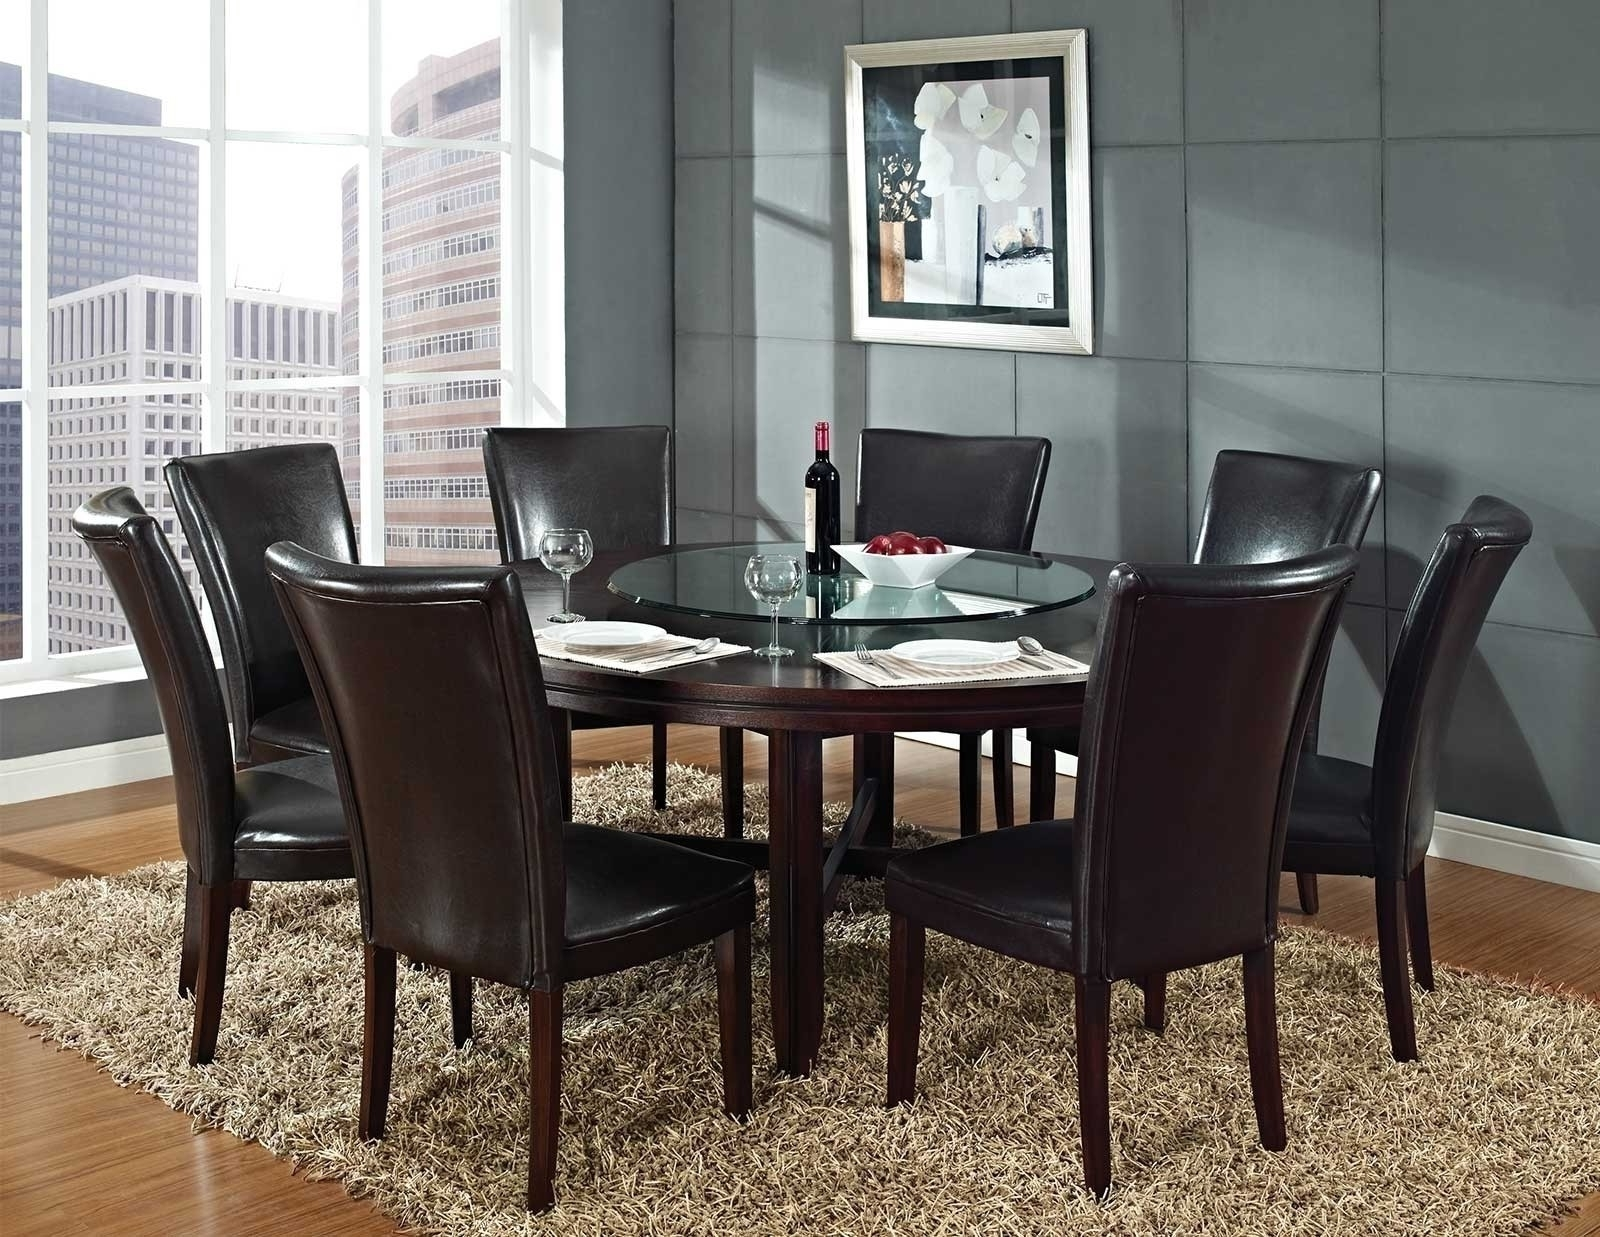 Favorite Dining Tables 8 Seater Elegant Luxury 10 Person Dining Table 24 In Dining Tables With 8 Seater (View 12 of 25)